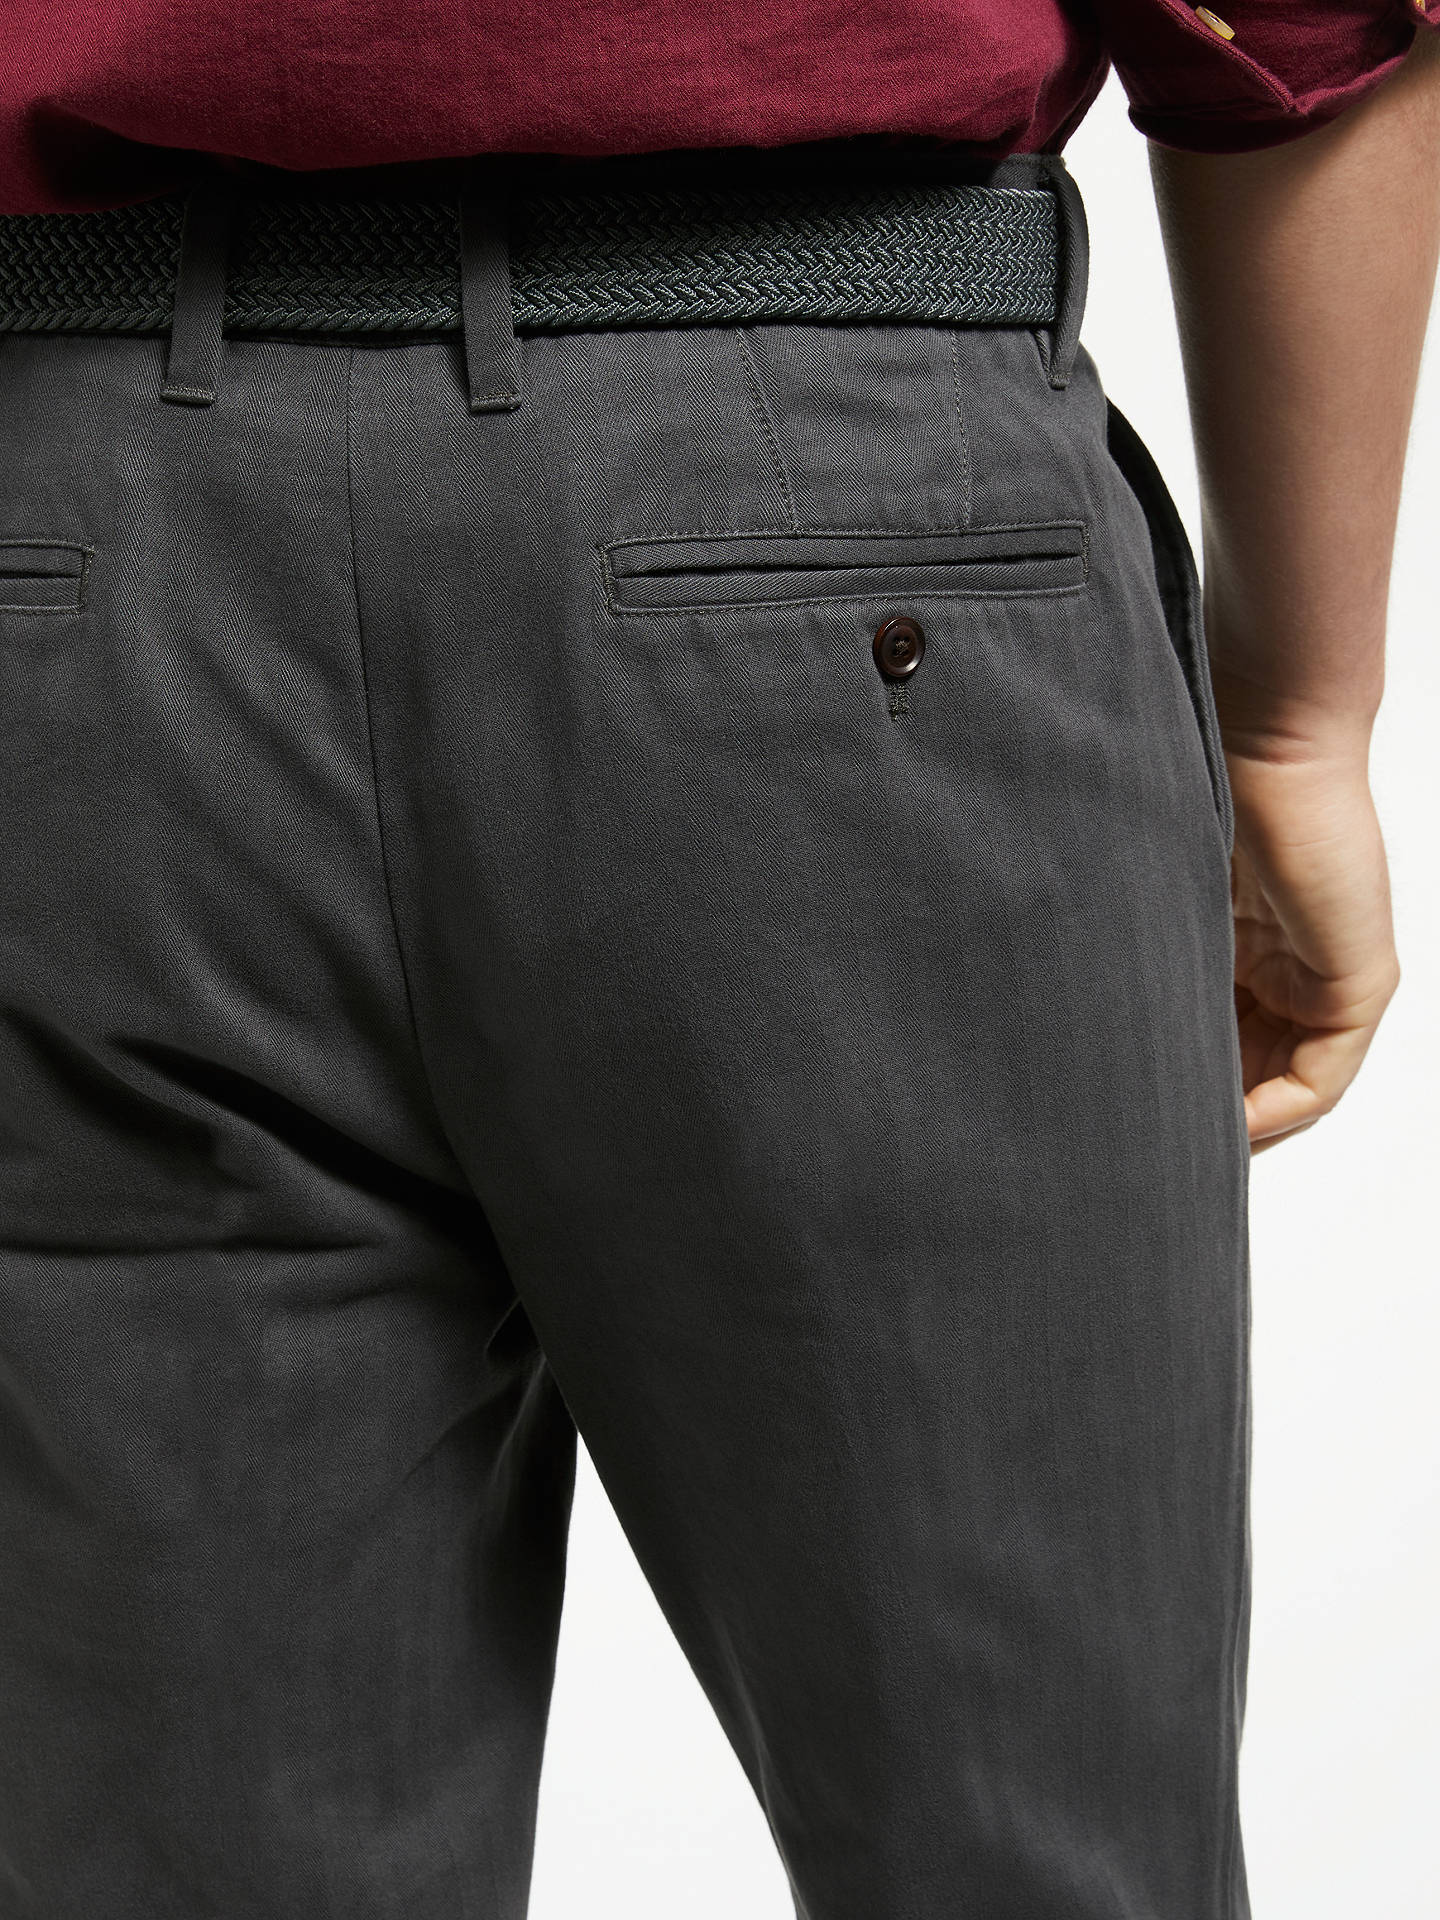 Buy John Lewis & Partners Semi Formal Cotton Trousers with Belt, Grey, 38R Online at johnlewis.com